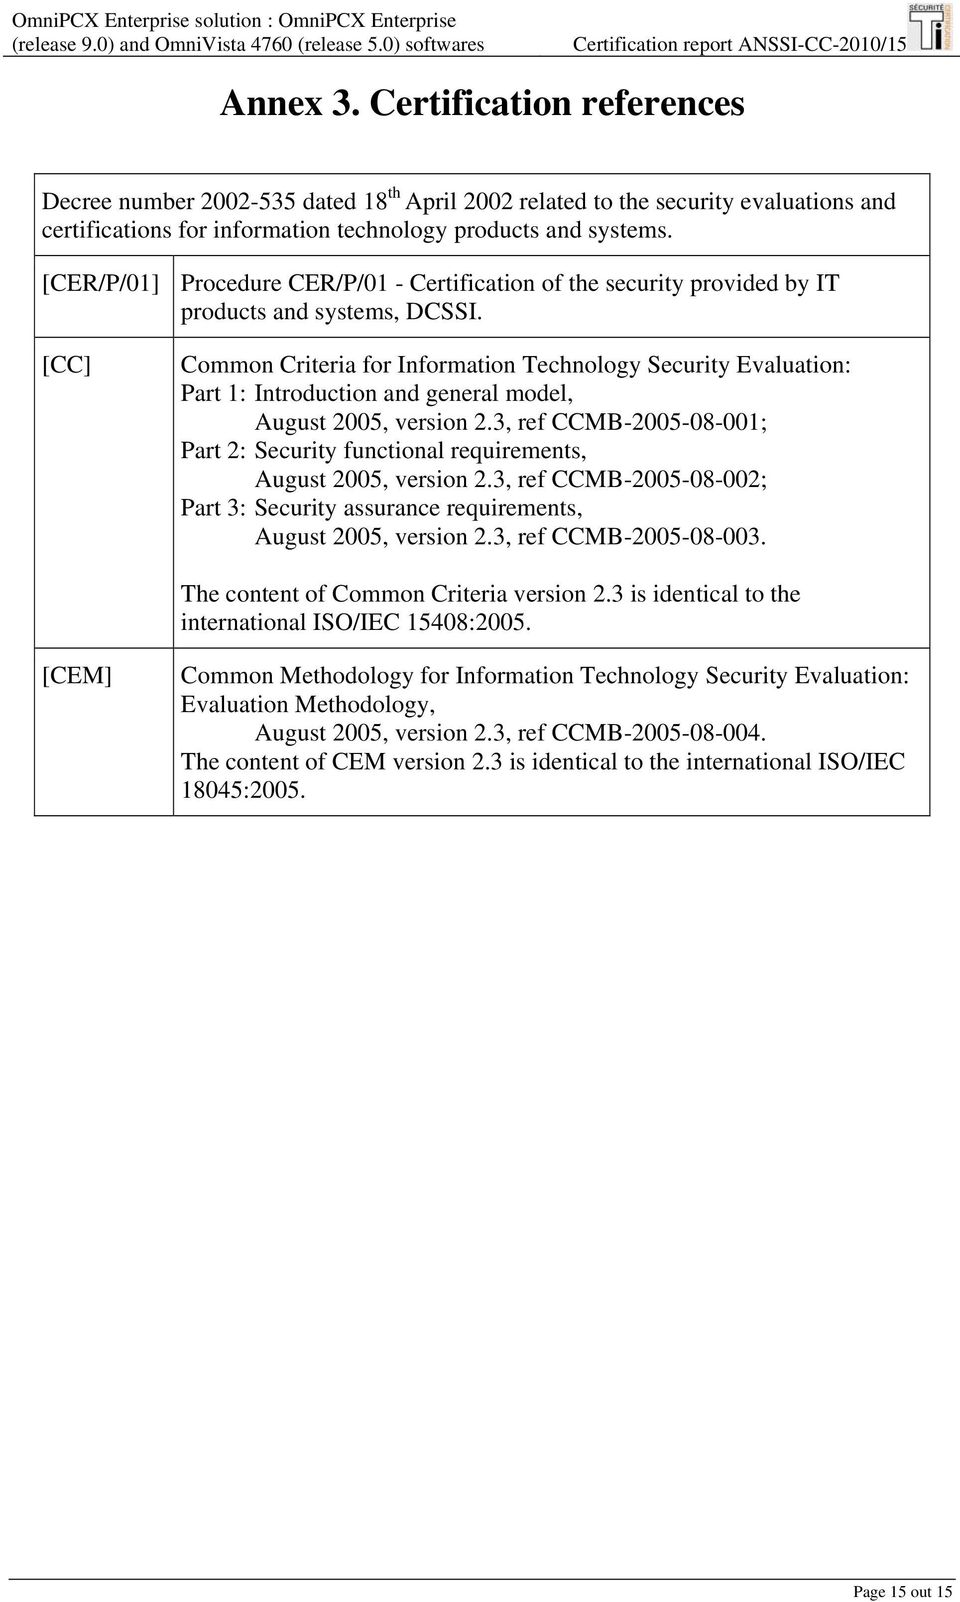 [CER/P/01] Procedure CER/P/01 - Certification of the security provided by IT products and systems, DCSSI.